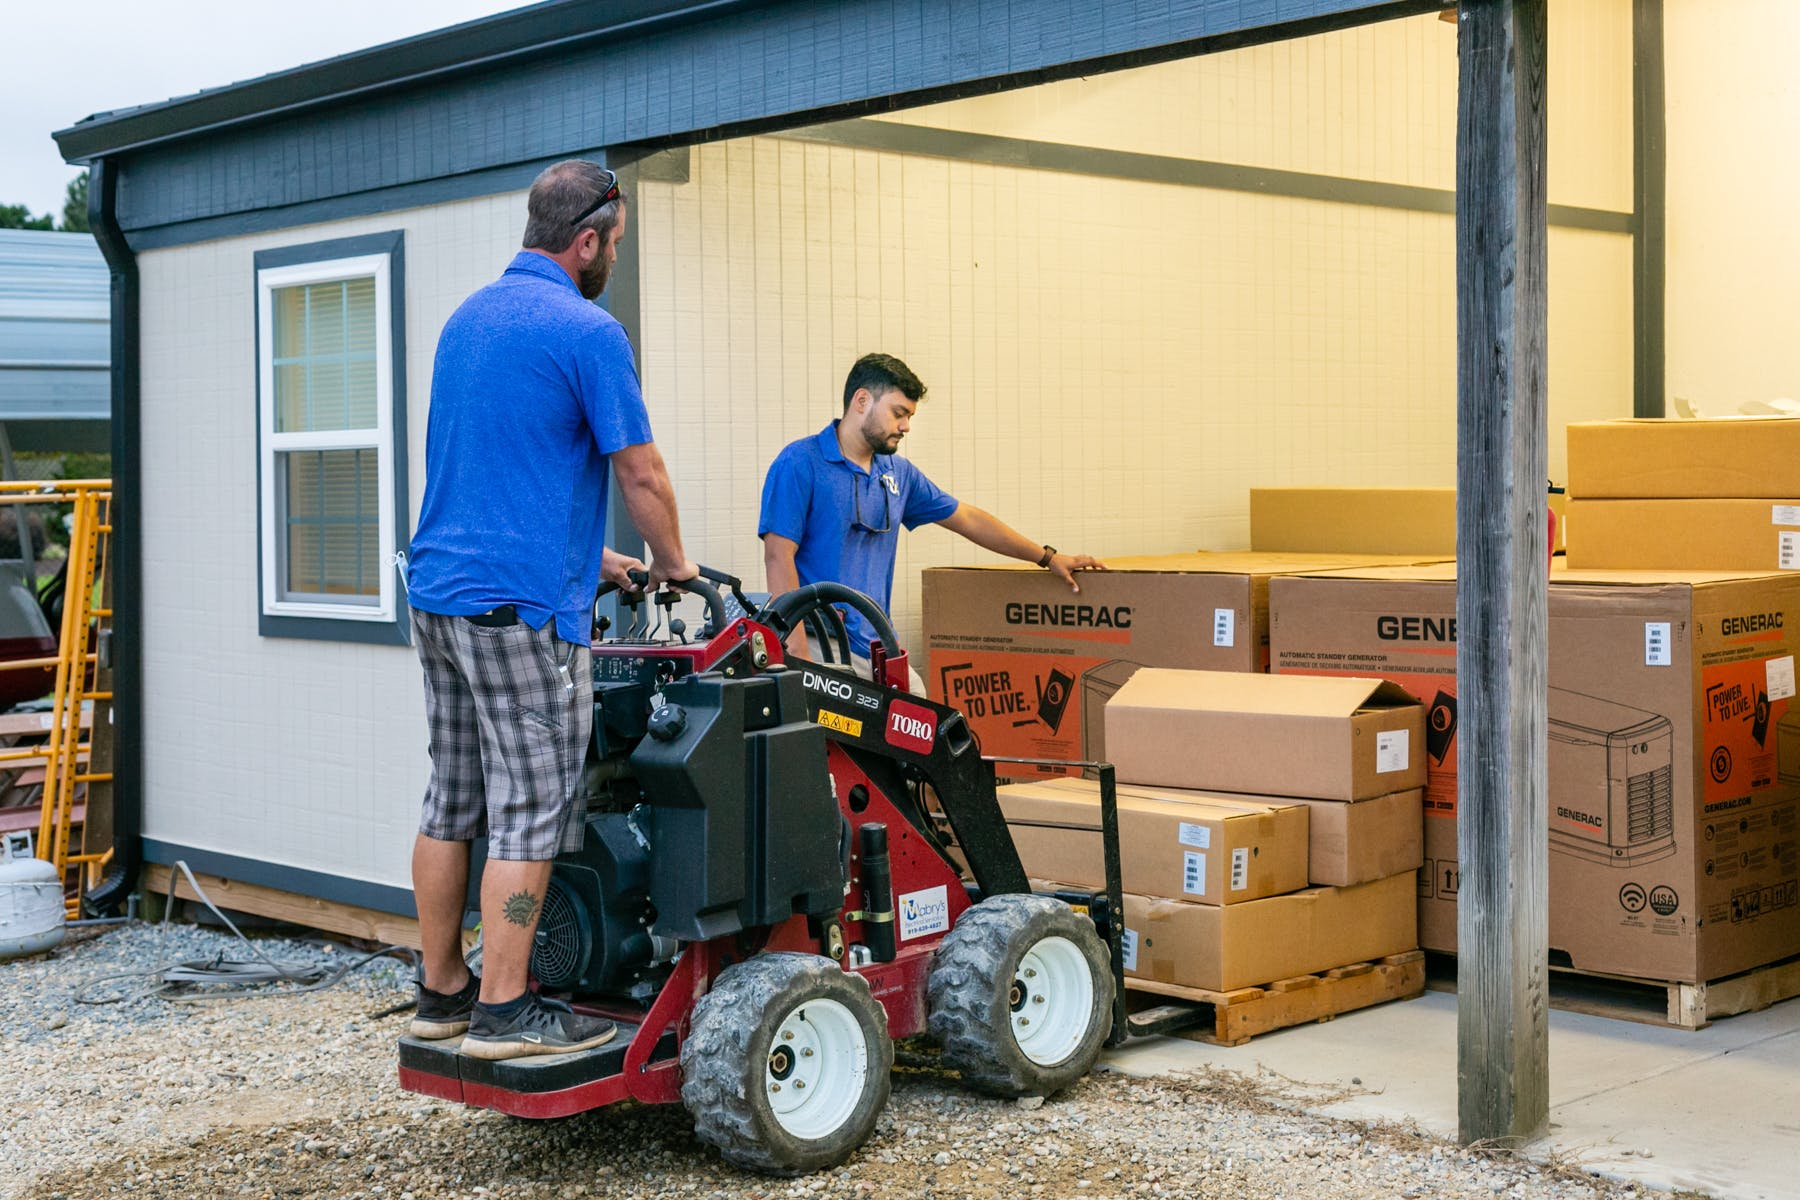 Mabry'c Electrical Inc employees moving boxes with small forklift